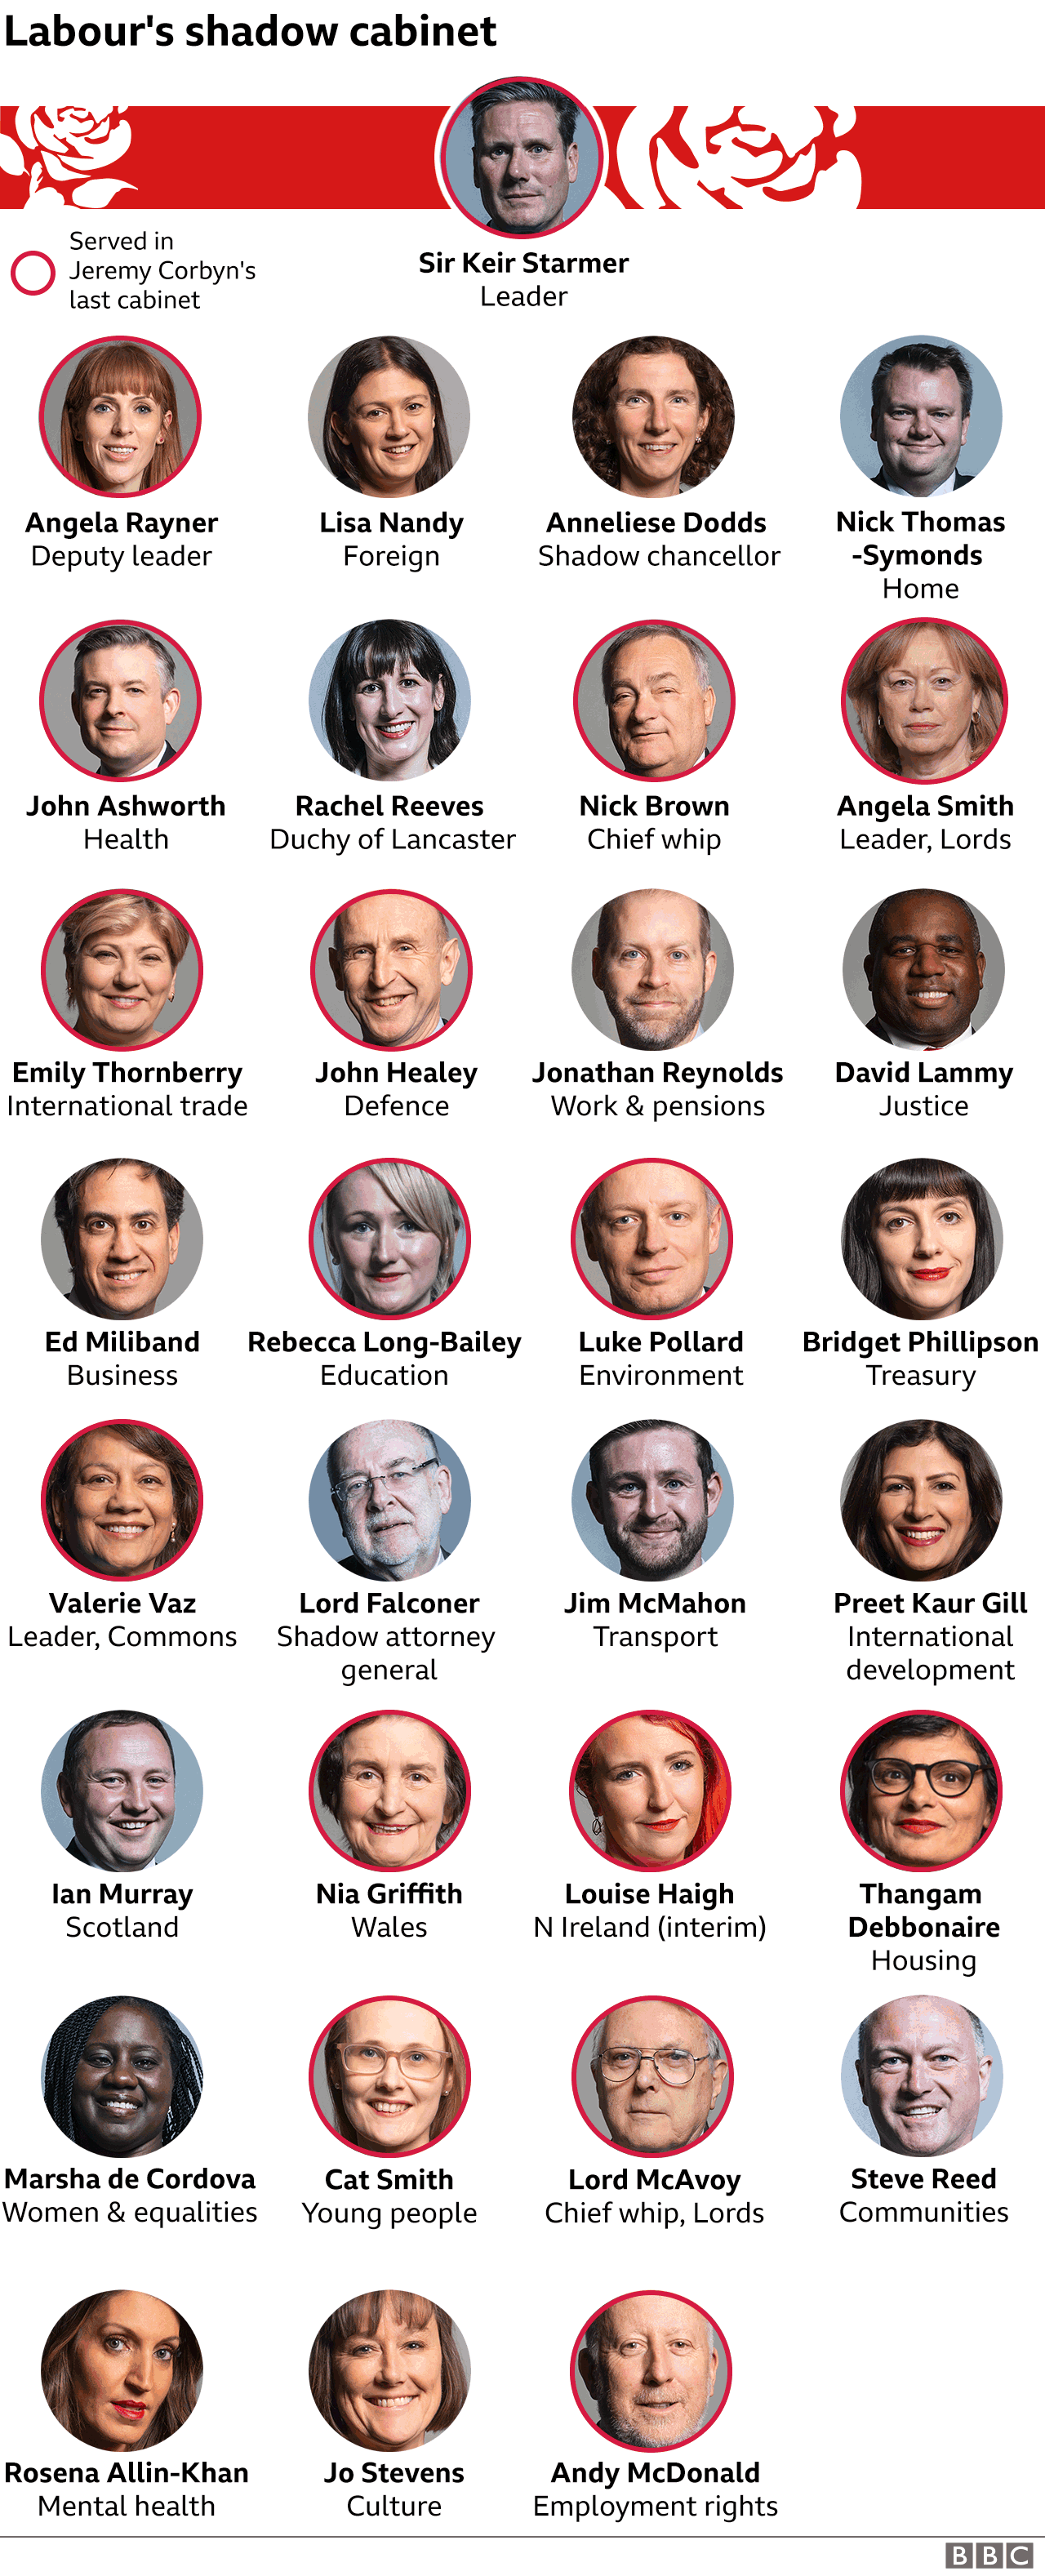 Chart showing shadow cabinet